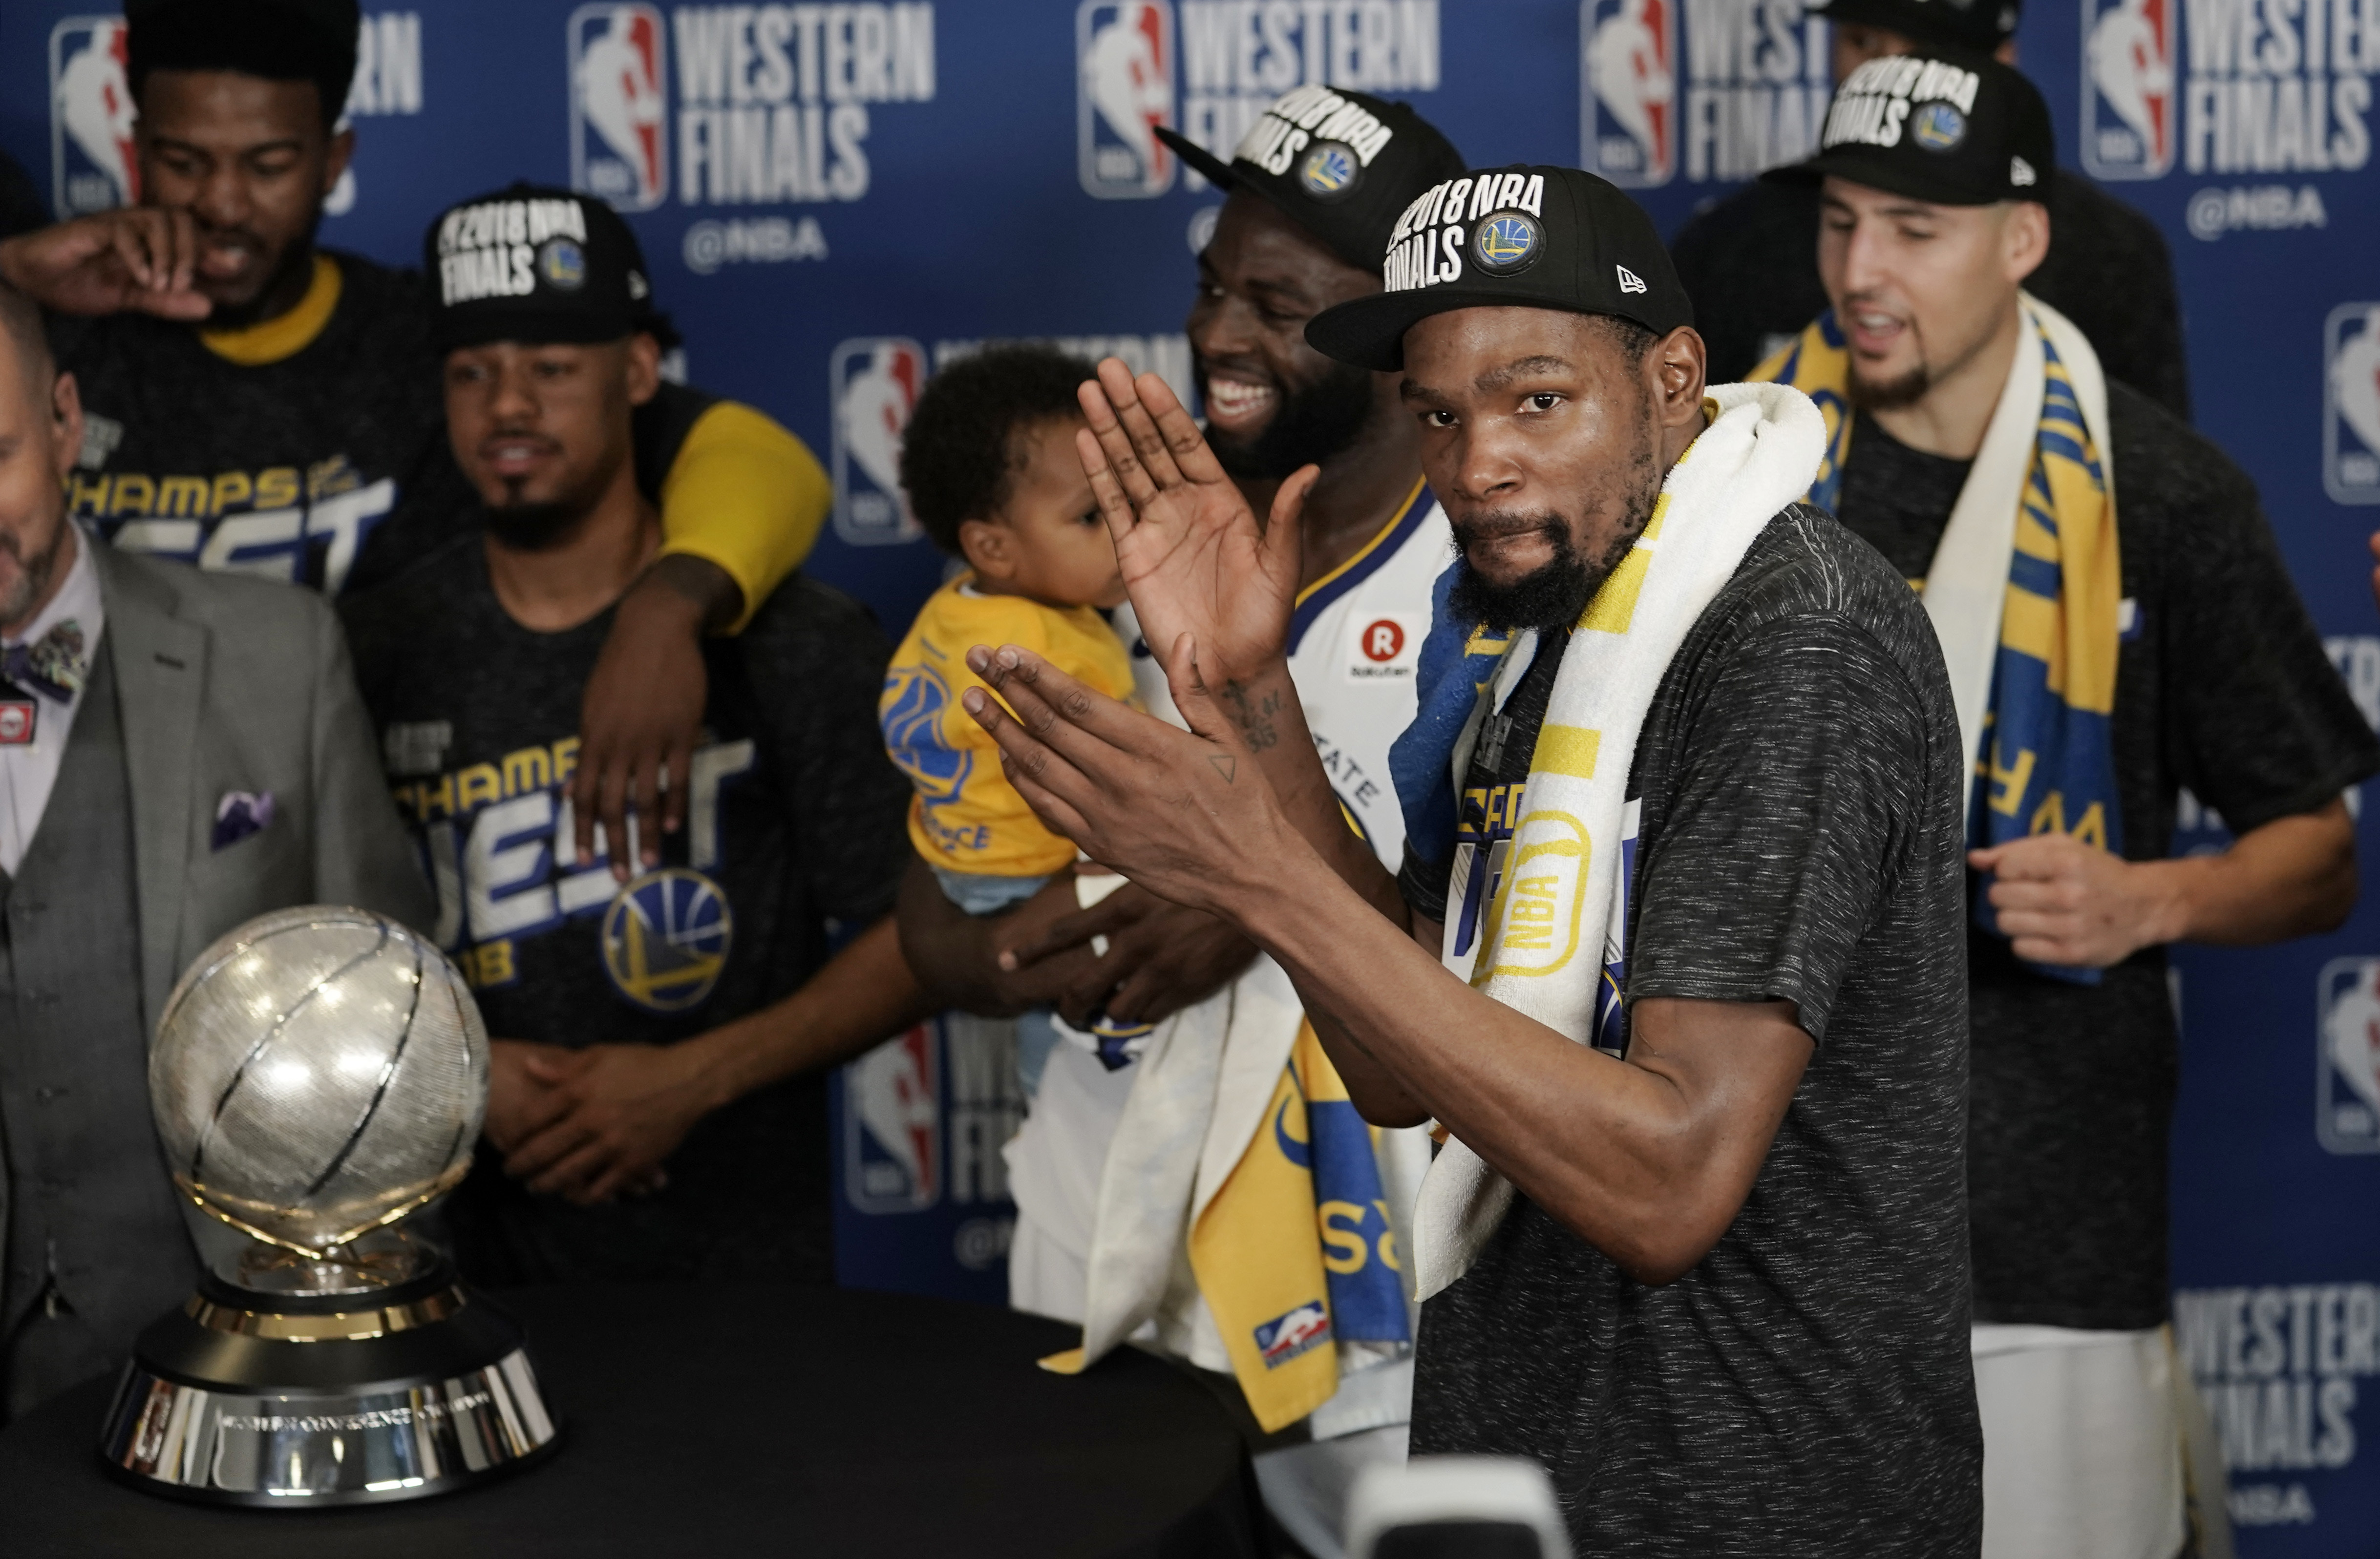 Golden State Warriors forward Kevin Durant celebrates with teammates as they receive their trophy after defeating the Houston Rockets in Game 7 of the NBA basketball Western Conference finals, Monday, May 28, 2018, in Houston.